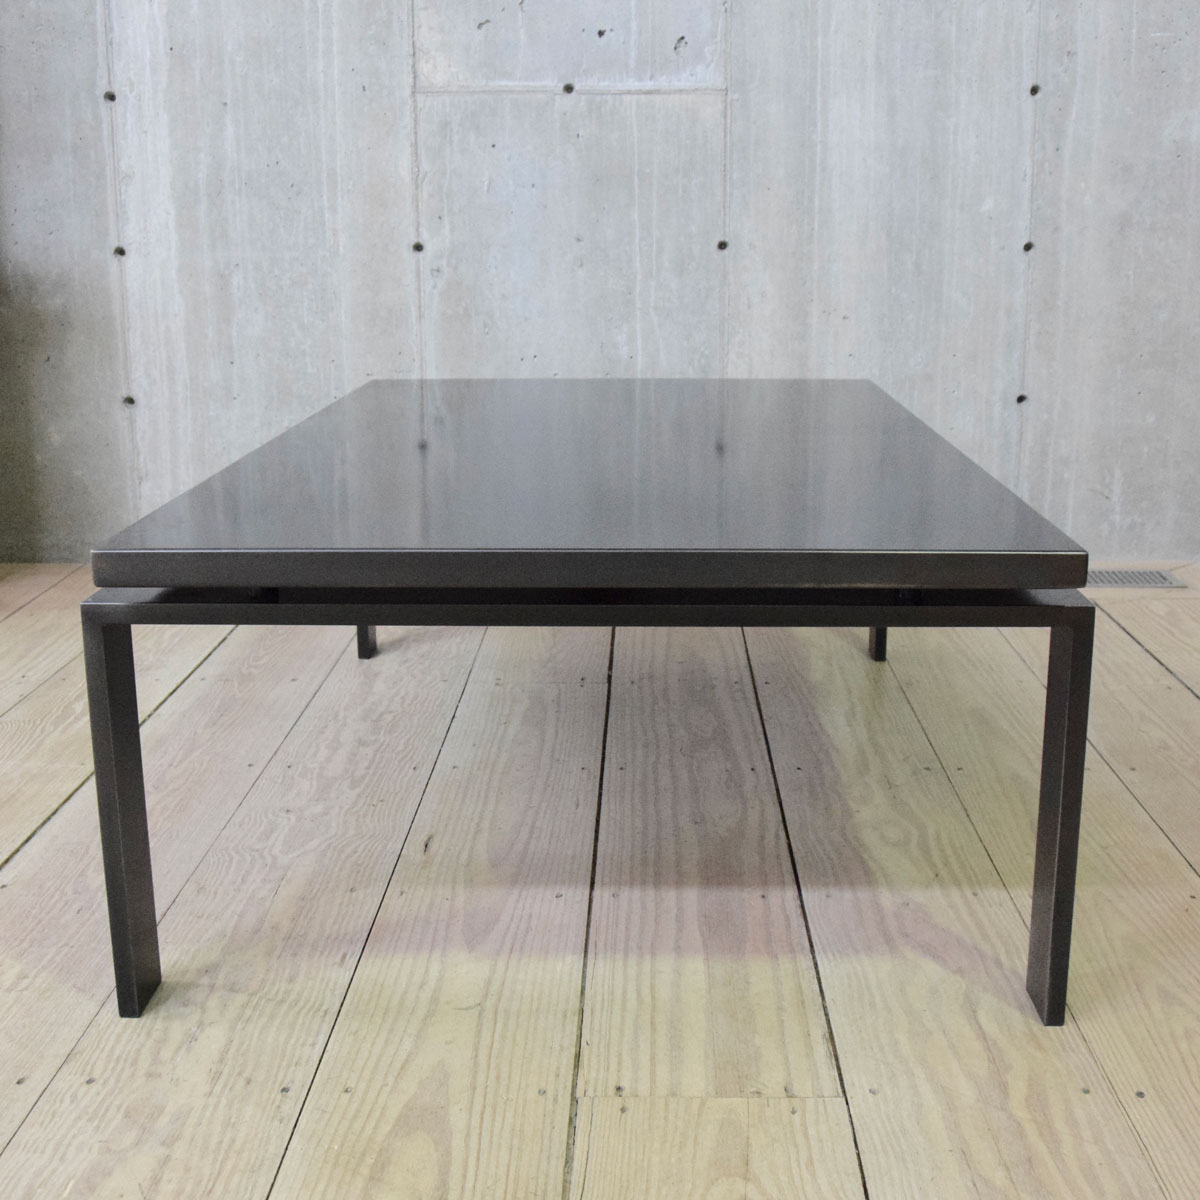 Most Recent Minimalist Coffee Tables Inside Minimalist Steel Coffee Table With Floating Blackened Steel Top – Rt (Gallery 12 of 20)